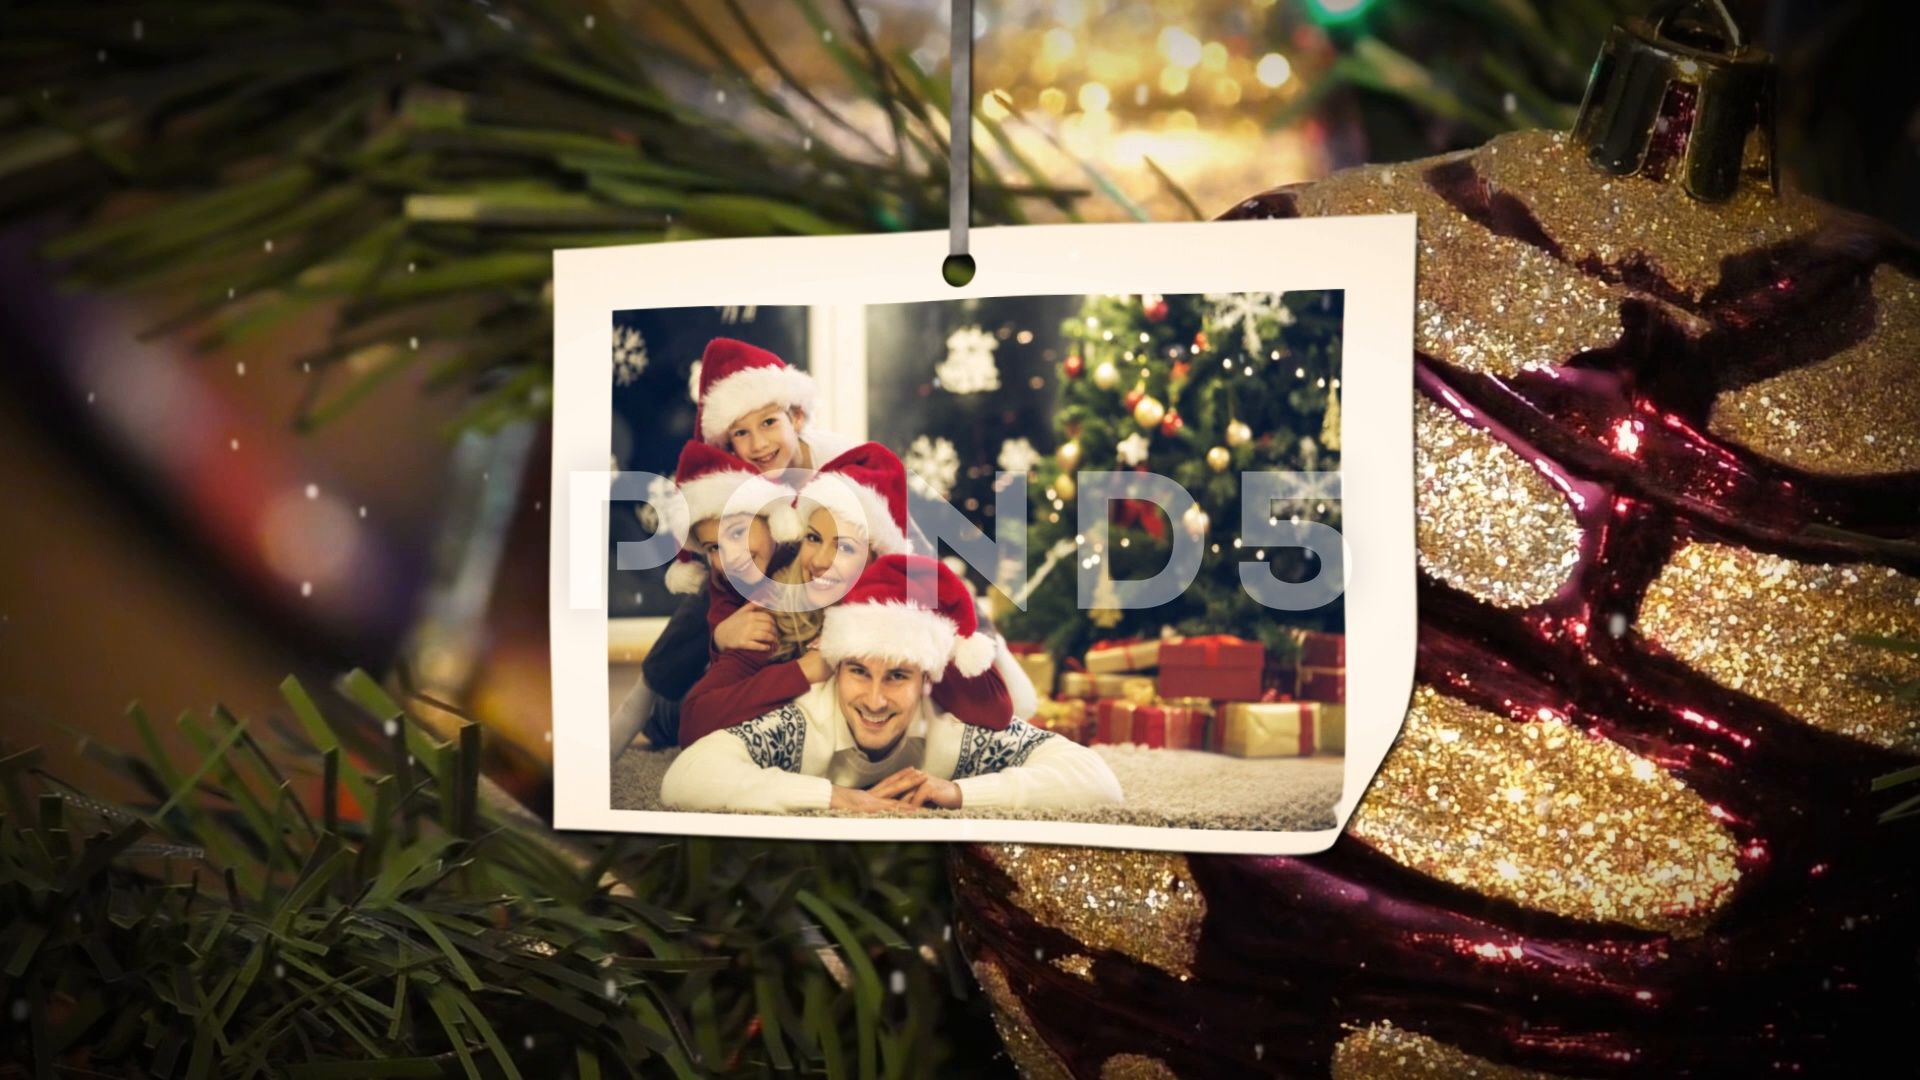 Christmas Tree Slideshow Stock After Effects Tree Christmas Slideshow Effects Christmas Tree Christmas Tree